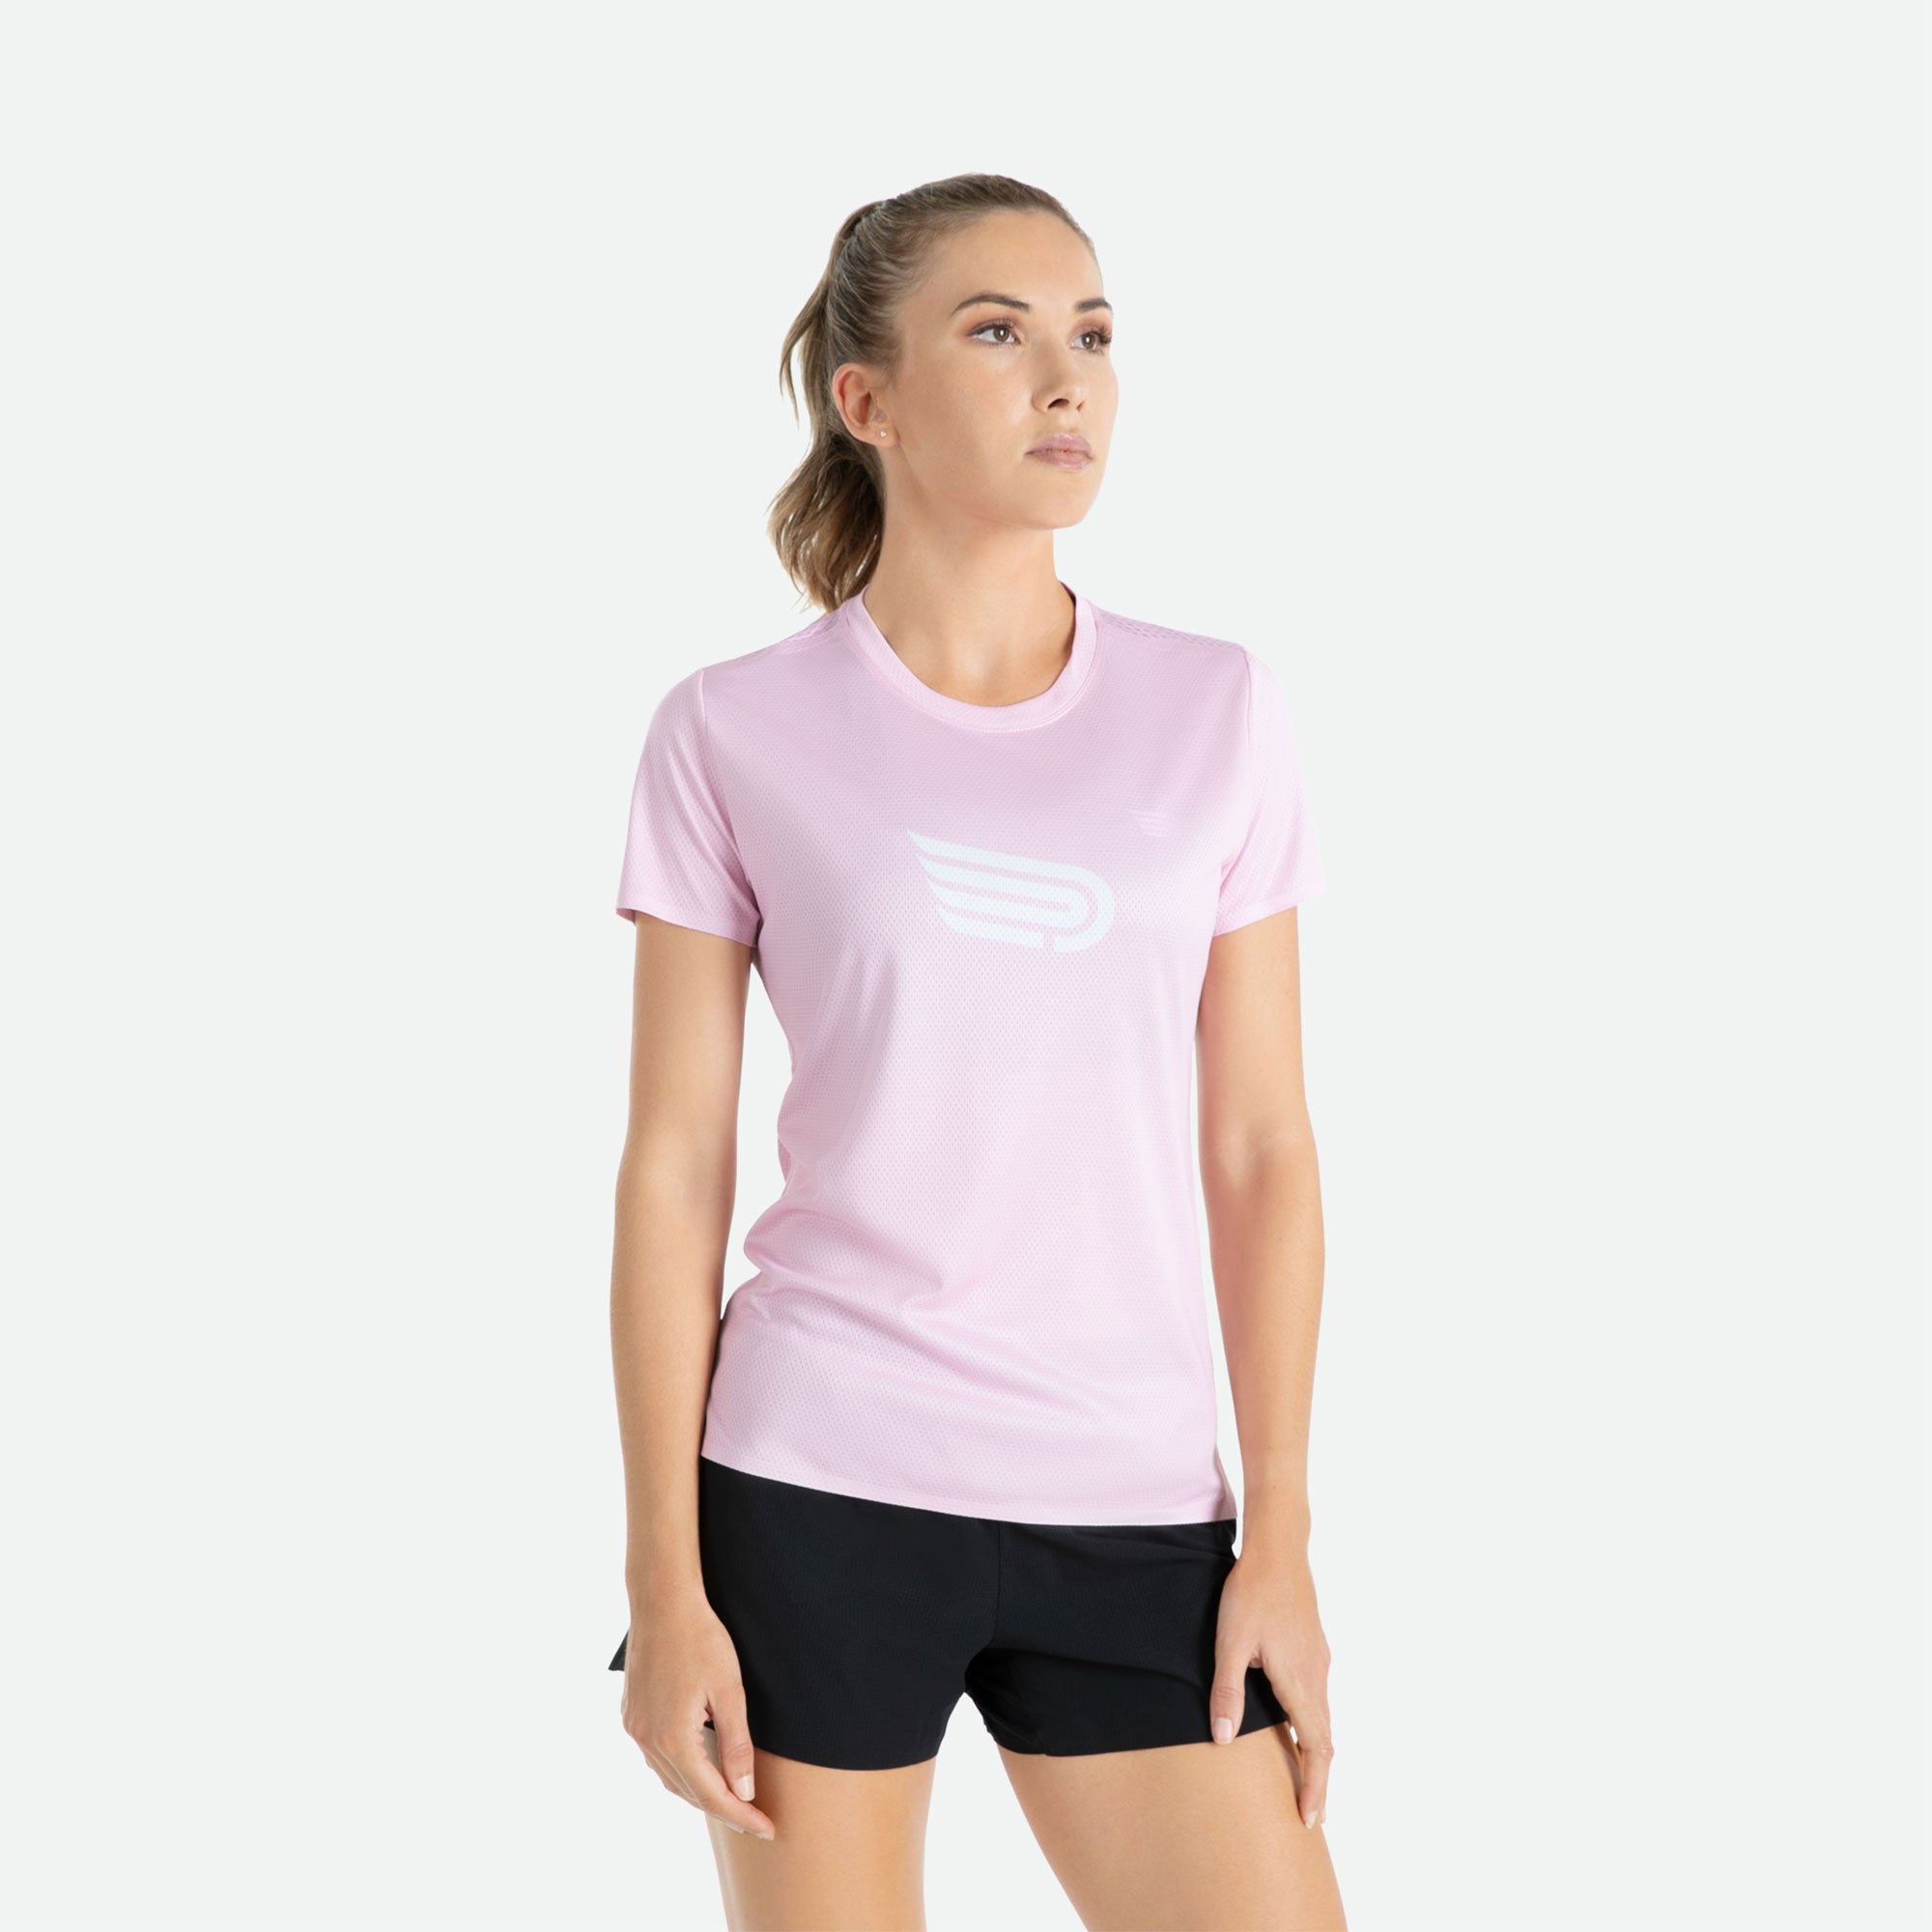 Short sleeve t-shirt women's Pressio Ārahi pink/white constructed of high filament mechanical knit fabric for unrestricted freedom of movement, enhanced comfort, and optimal hand feel.